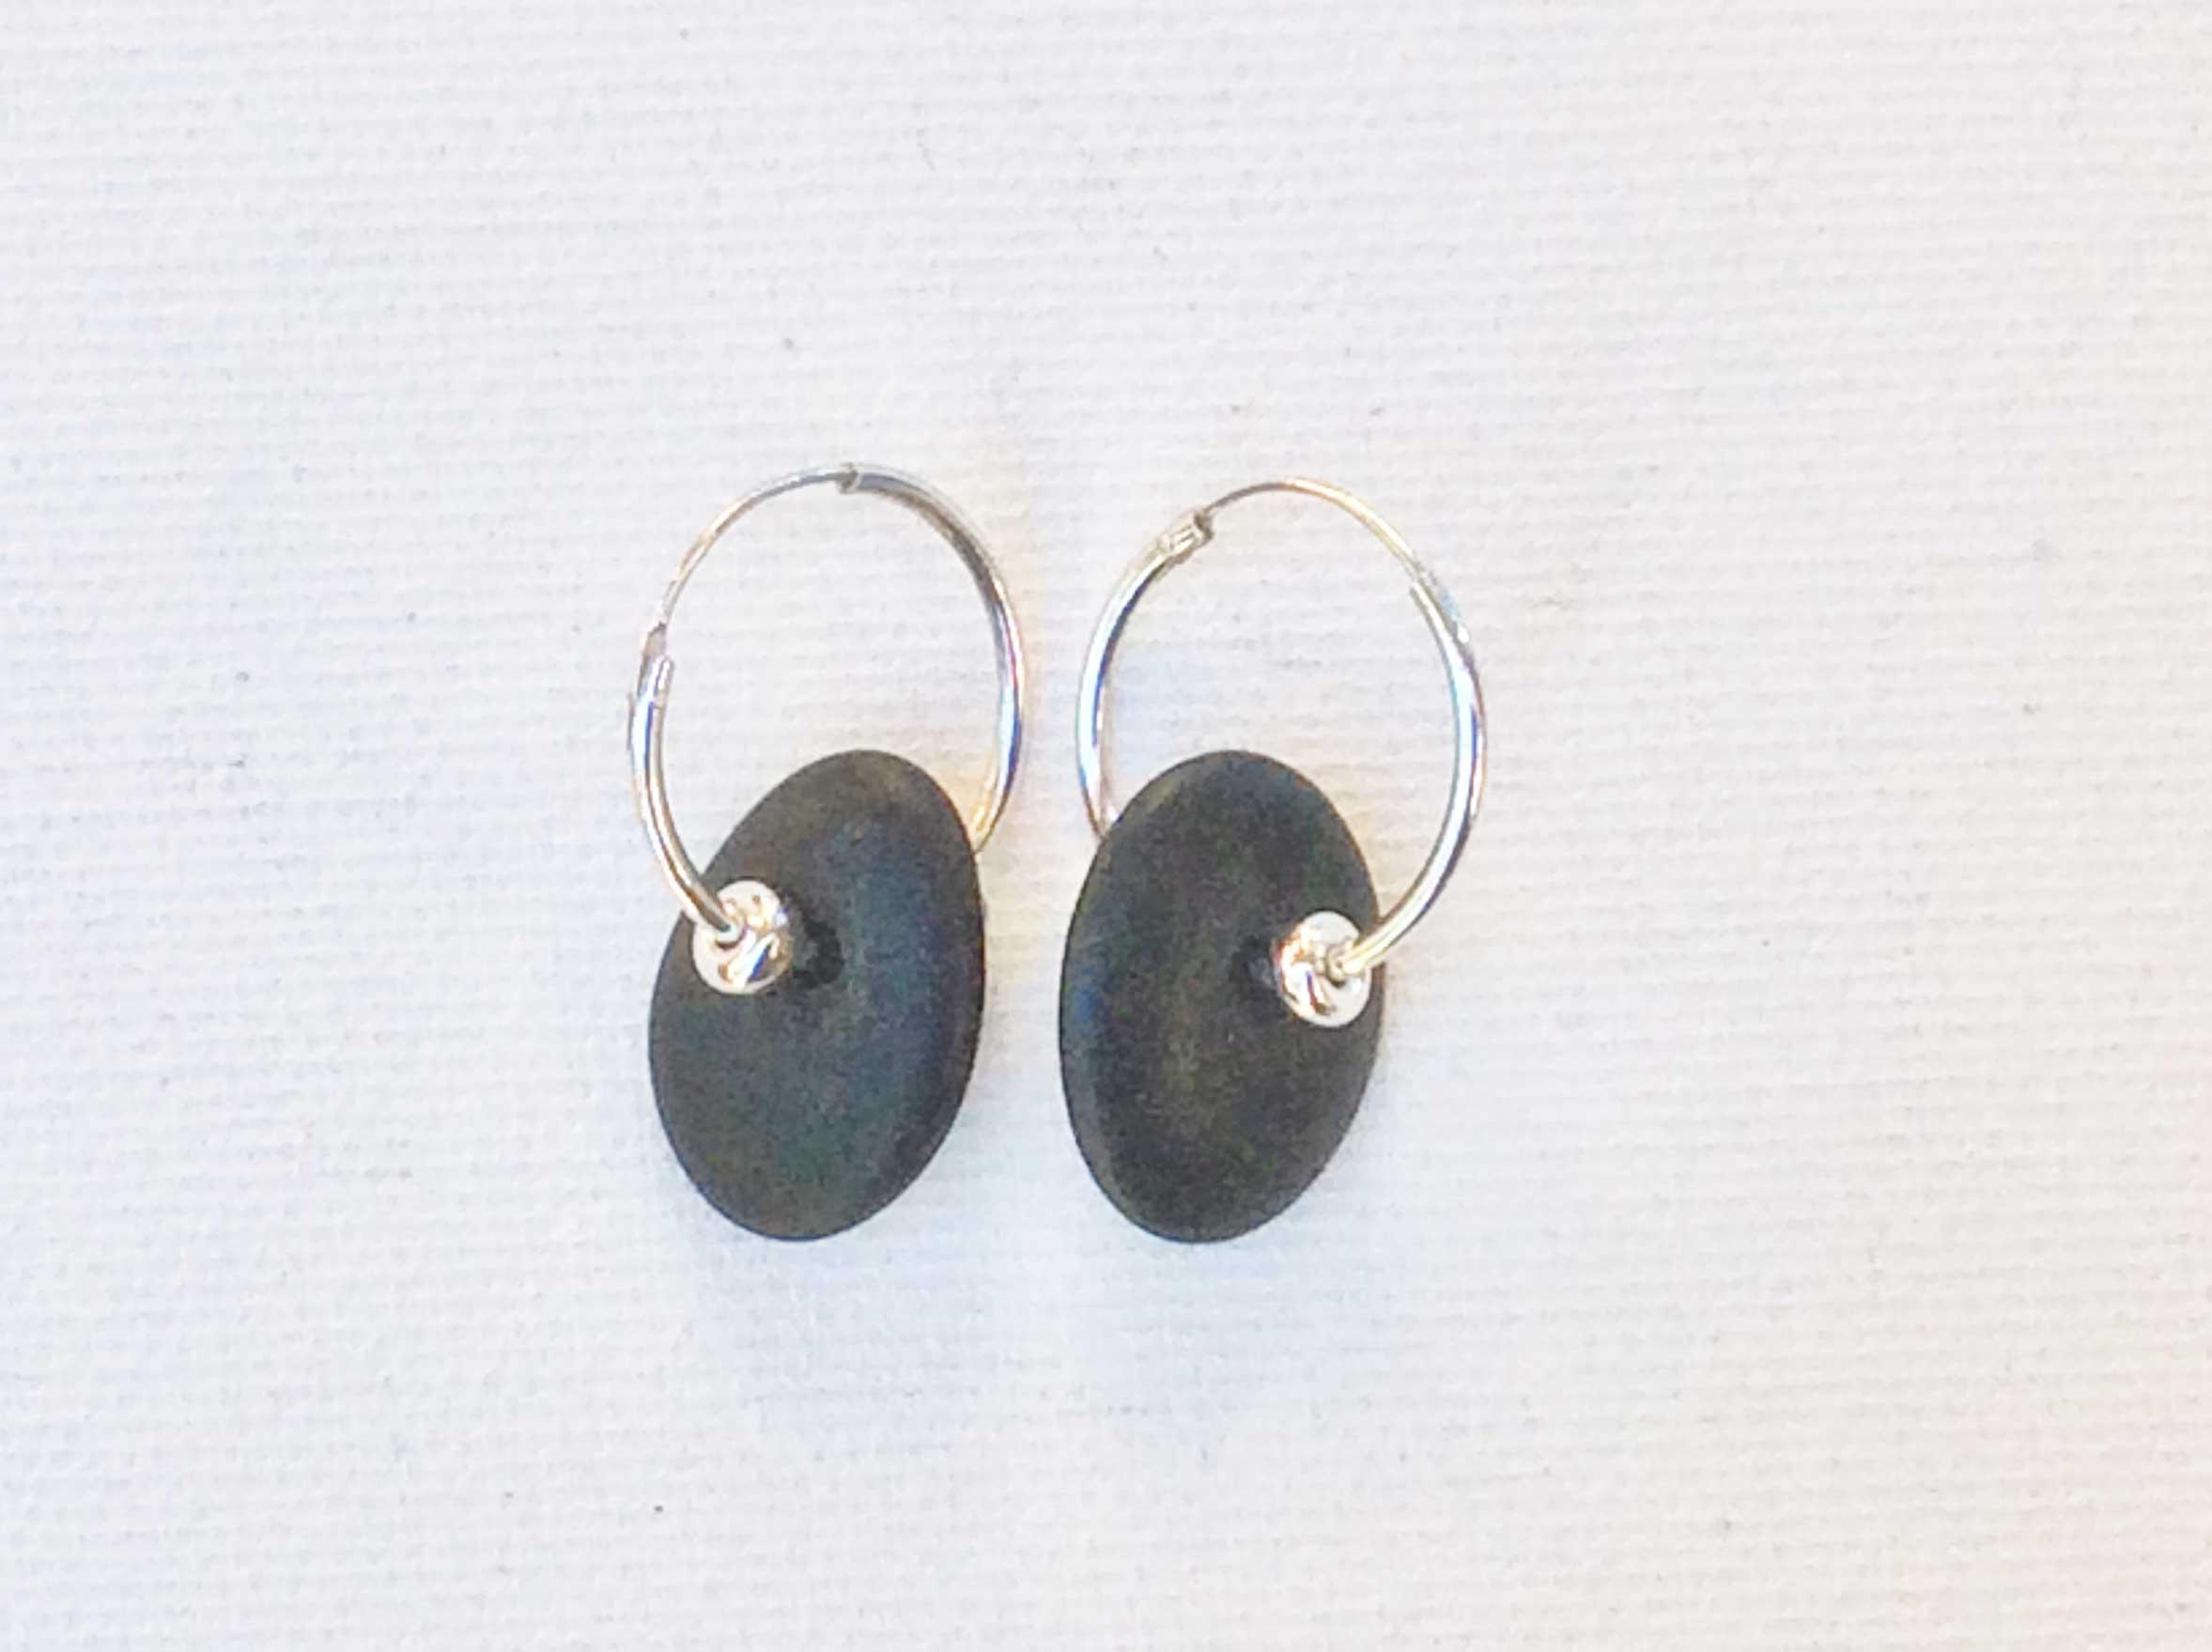 Crescent 1 Earrings, 1 stone, sterling silver beads/hoops By Moss Gathers Stones